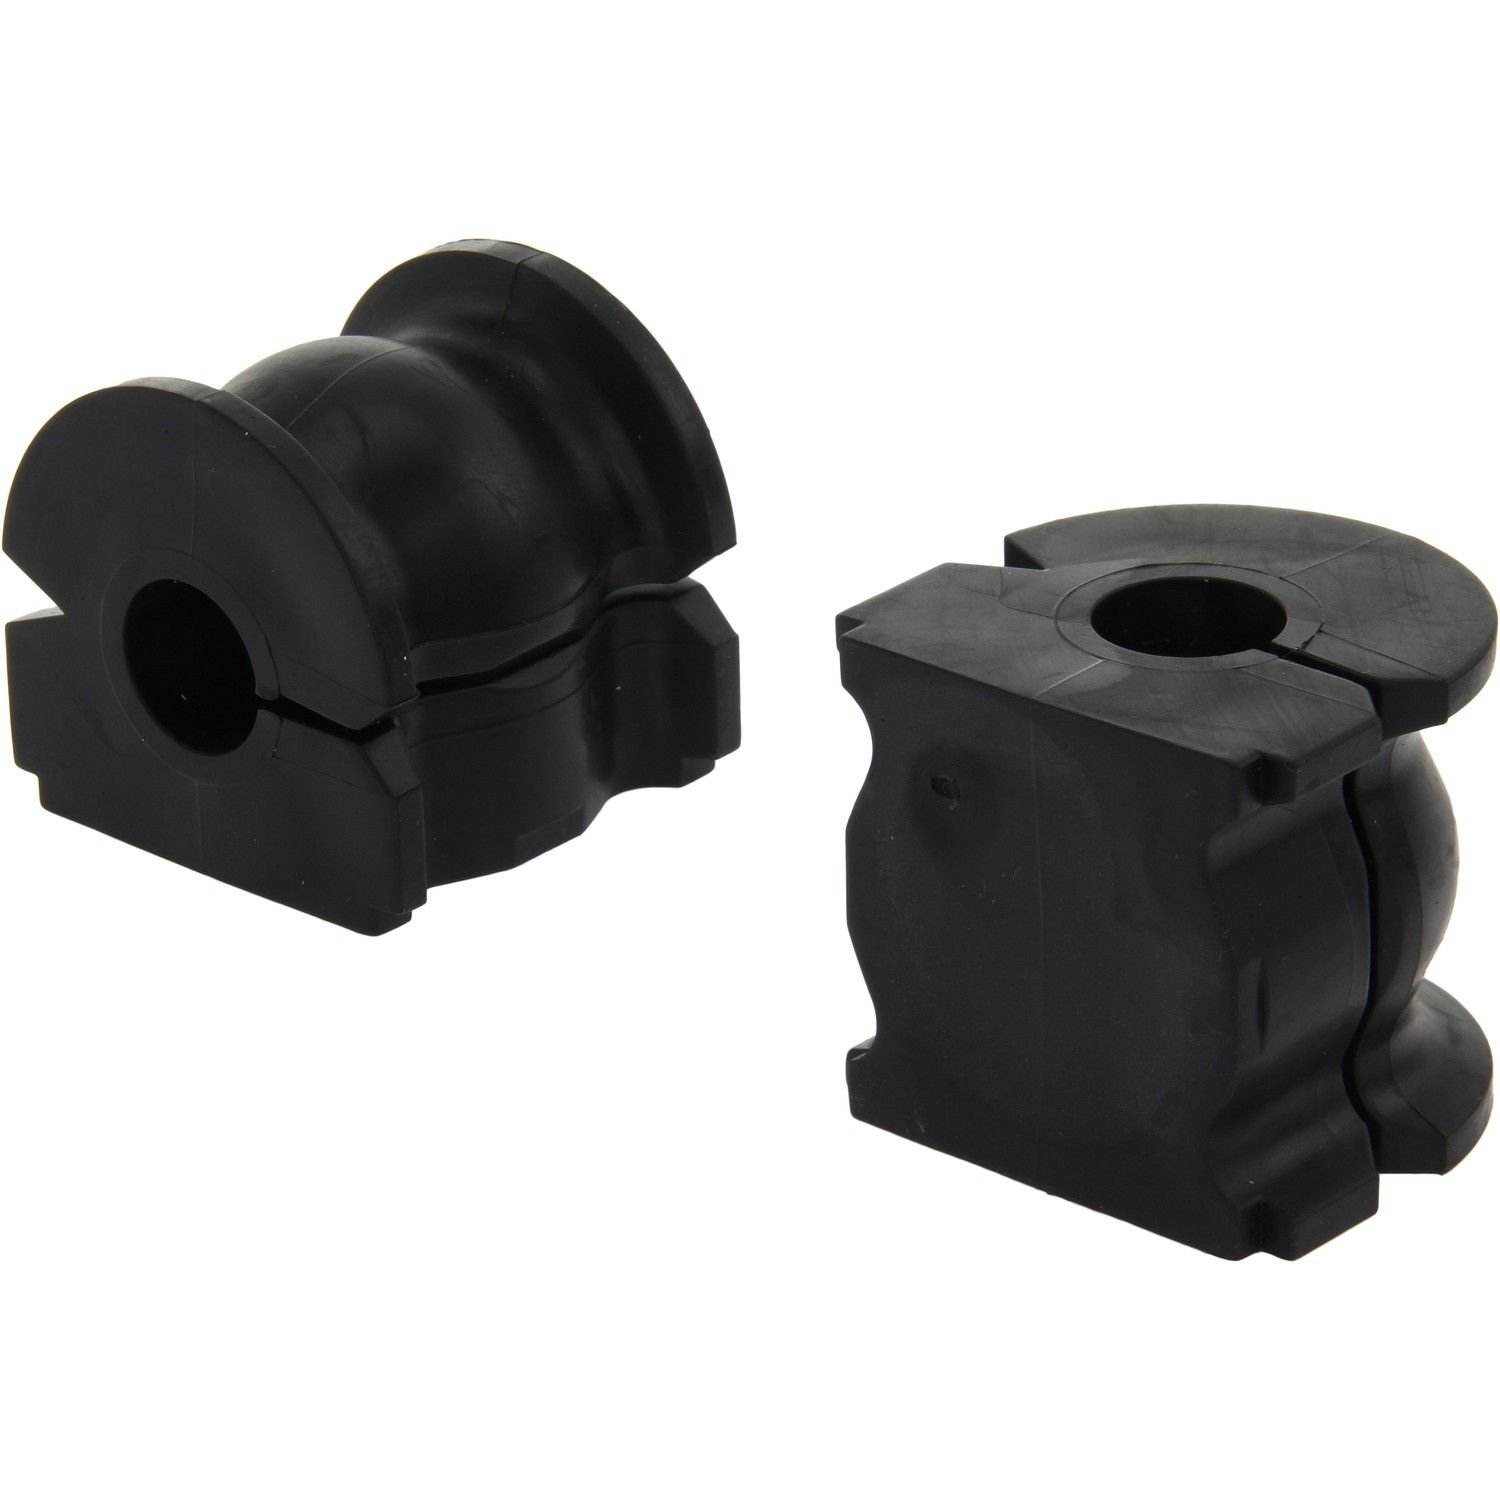 Honda Civic Suspension Stabilizer Bar Bushing Replacement Beck 1999 Rear Sway 2002 To Frame Centric 60240101 13mm